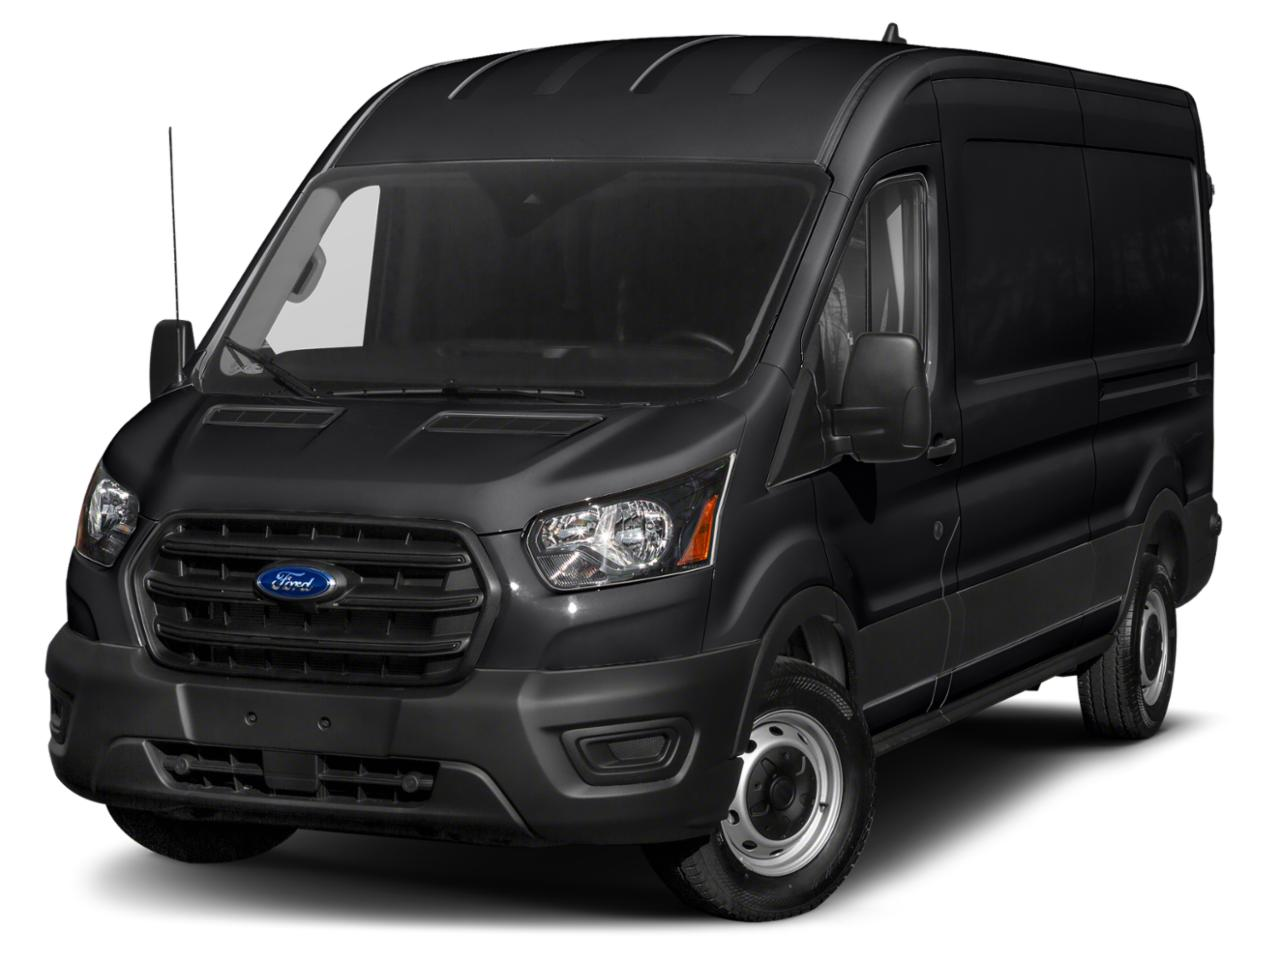 2020 ford transit cargo van for sale in norfolk 1ftrs4ug0lka97502 courtesy ford of norfolk 2020 ford transit cargo van for sale in norfolk 1ftrs4ug0lka97502 courtesy ford of norfolk